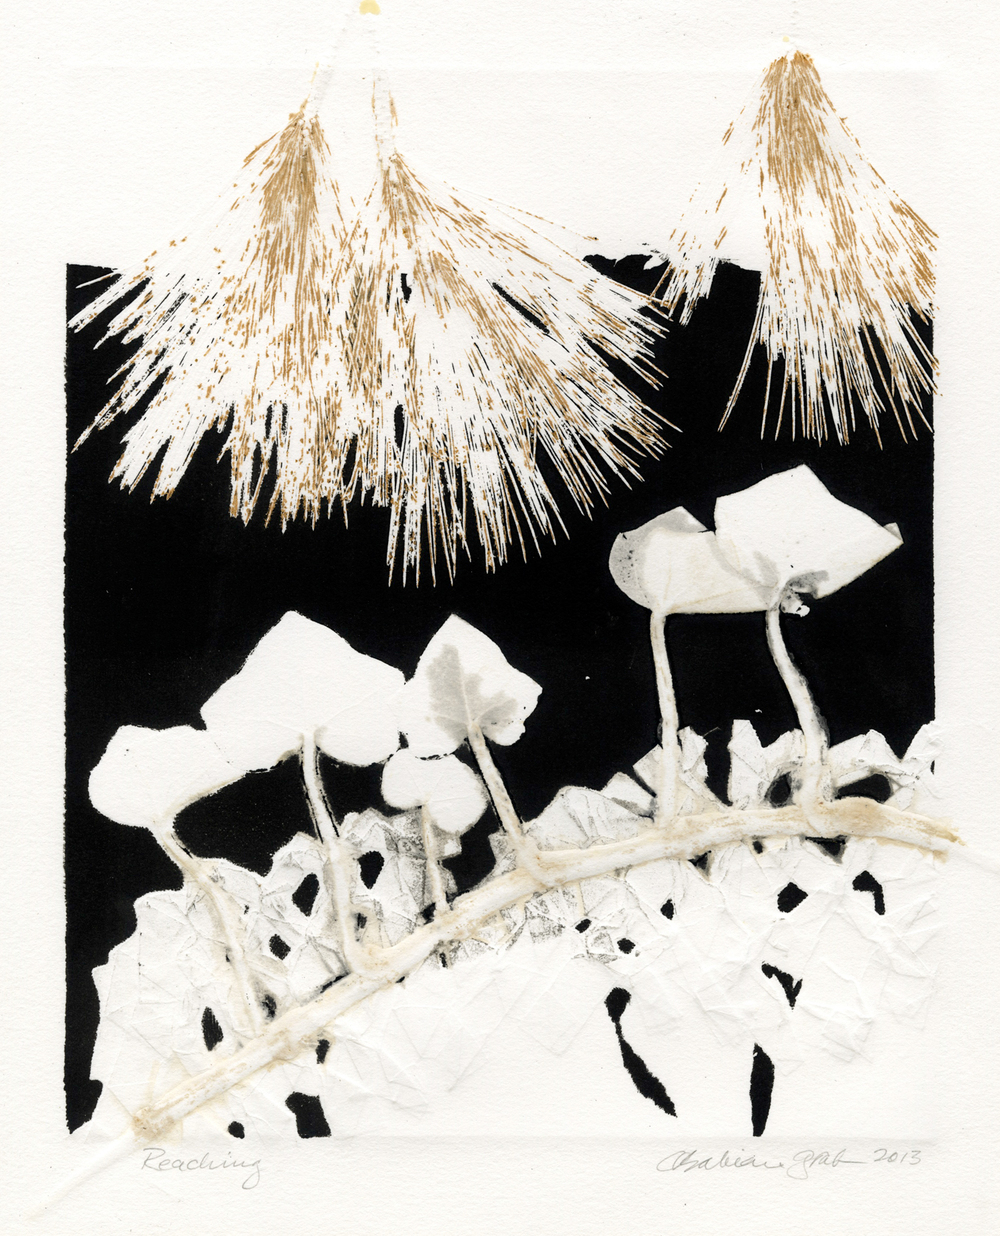 Reaching,  monotype, 11 x 9 inches, 2013